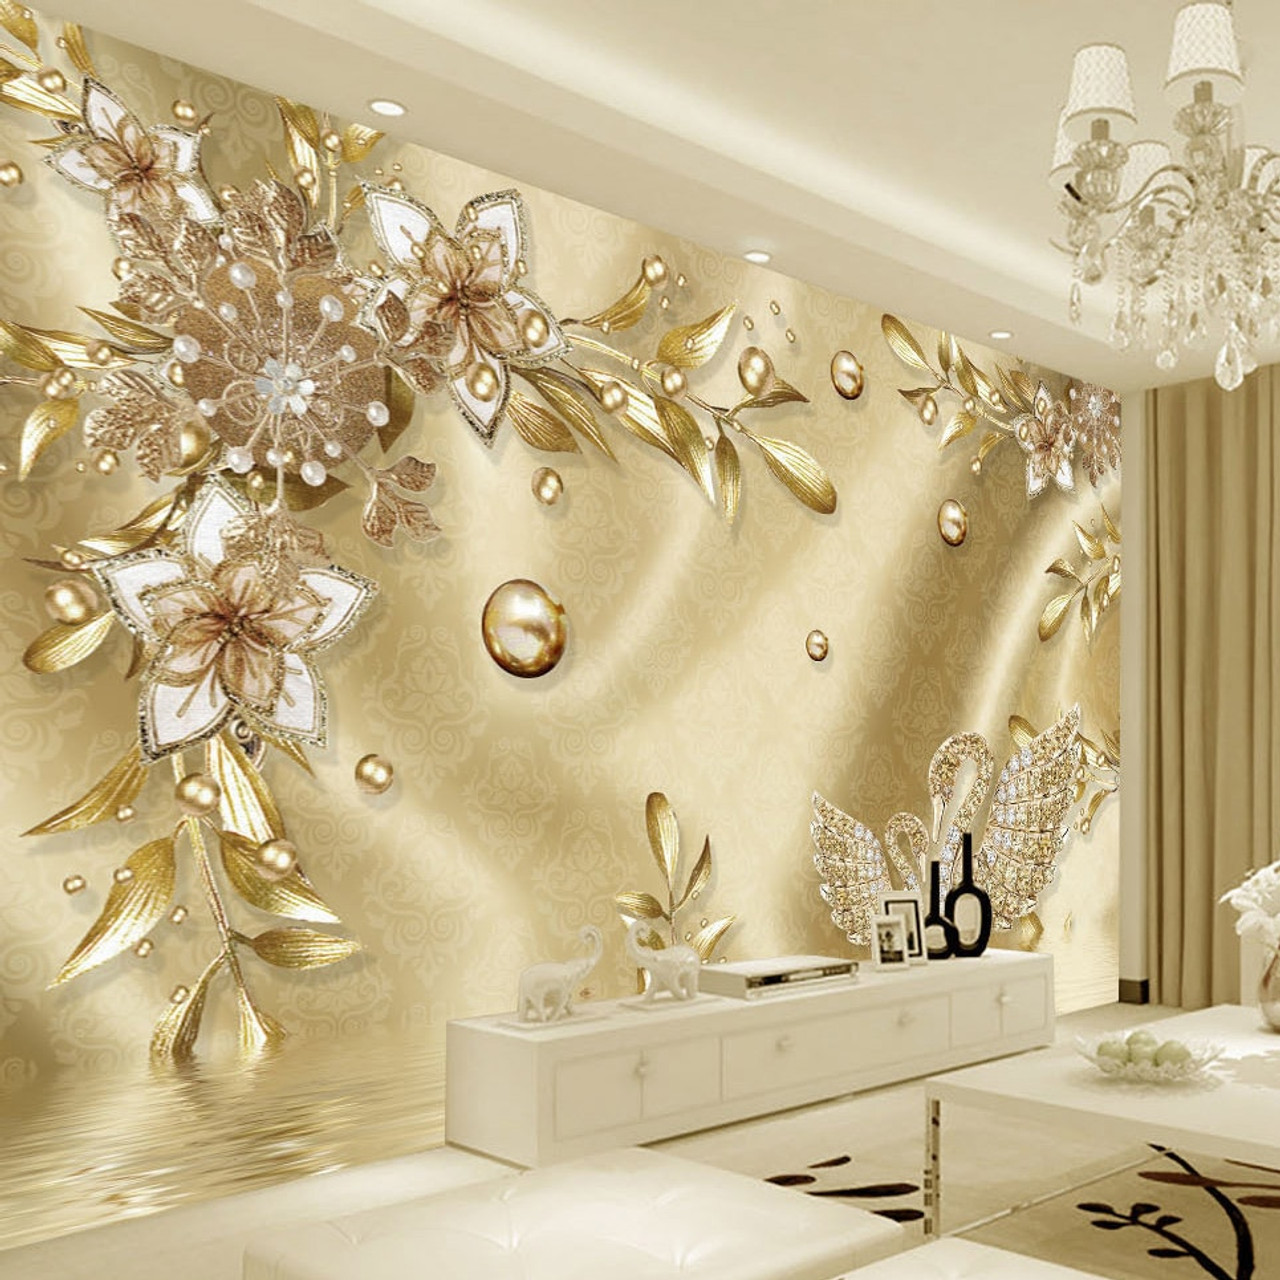 Decoration 3d Murale European Style Luxury Golden 3d Flower Jewelry Damascus Pattern Background Decoration Mural Wallpaper For Living Room Home Decor